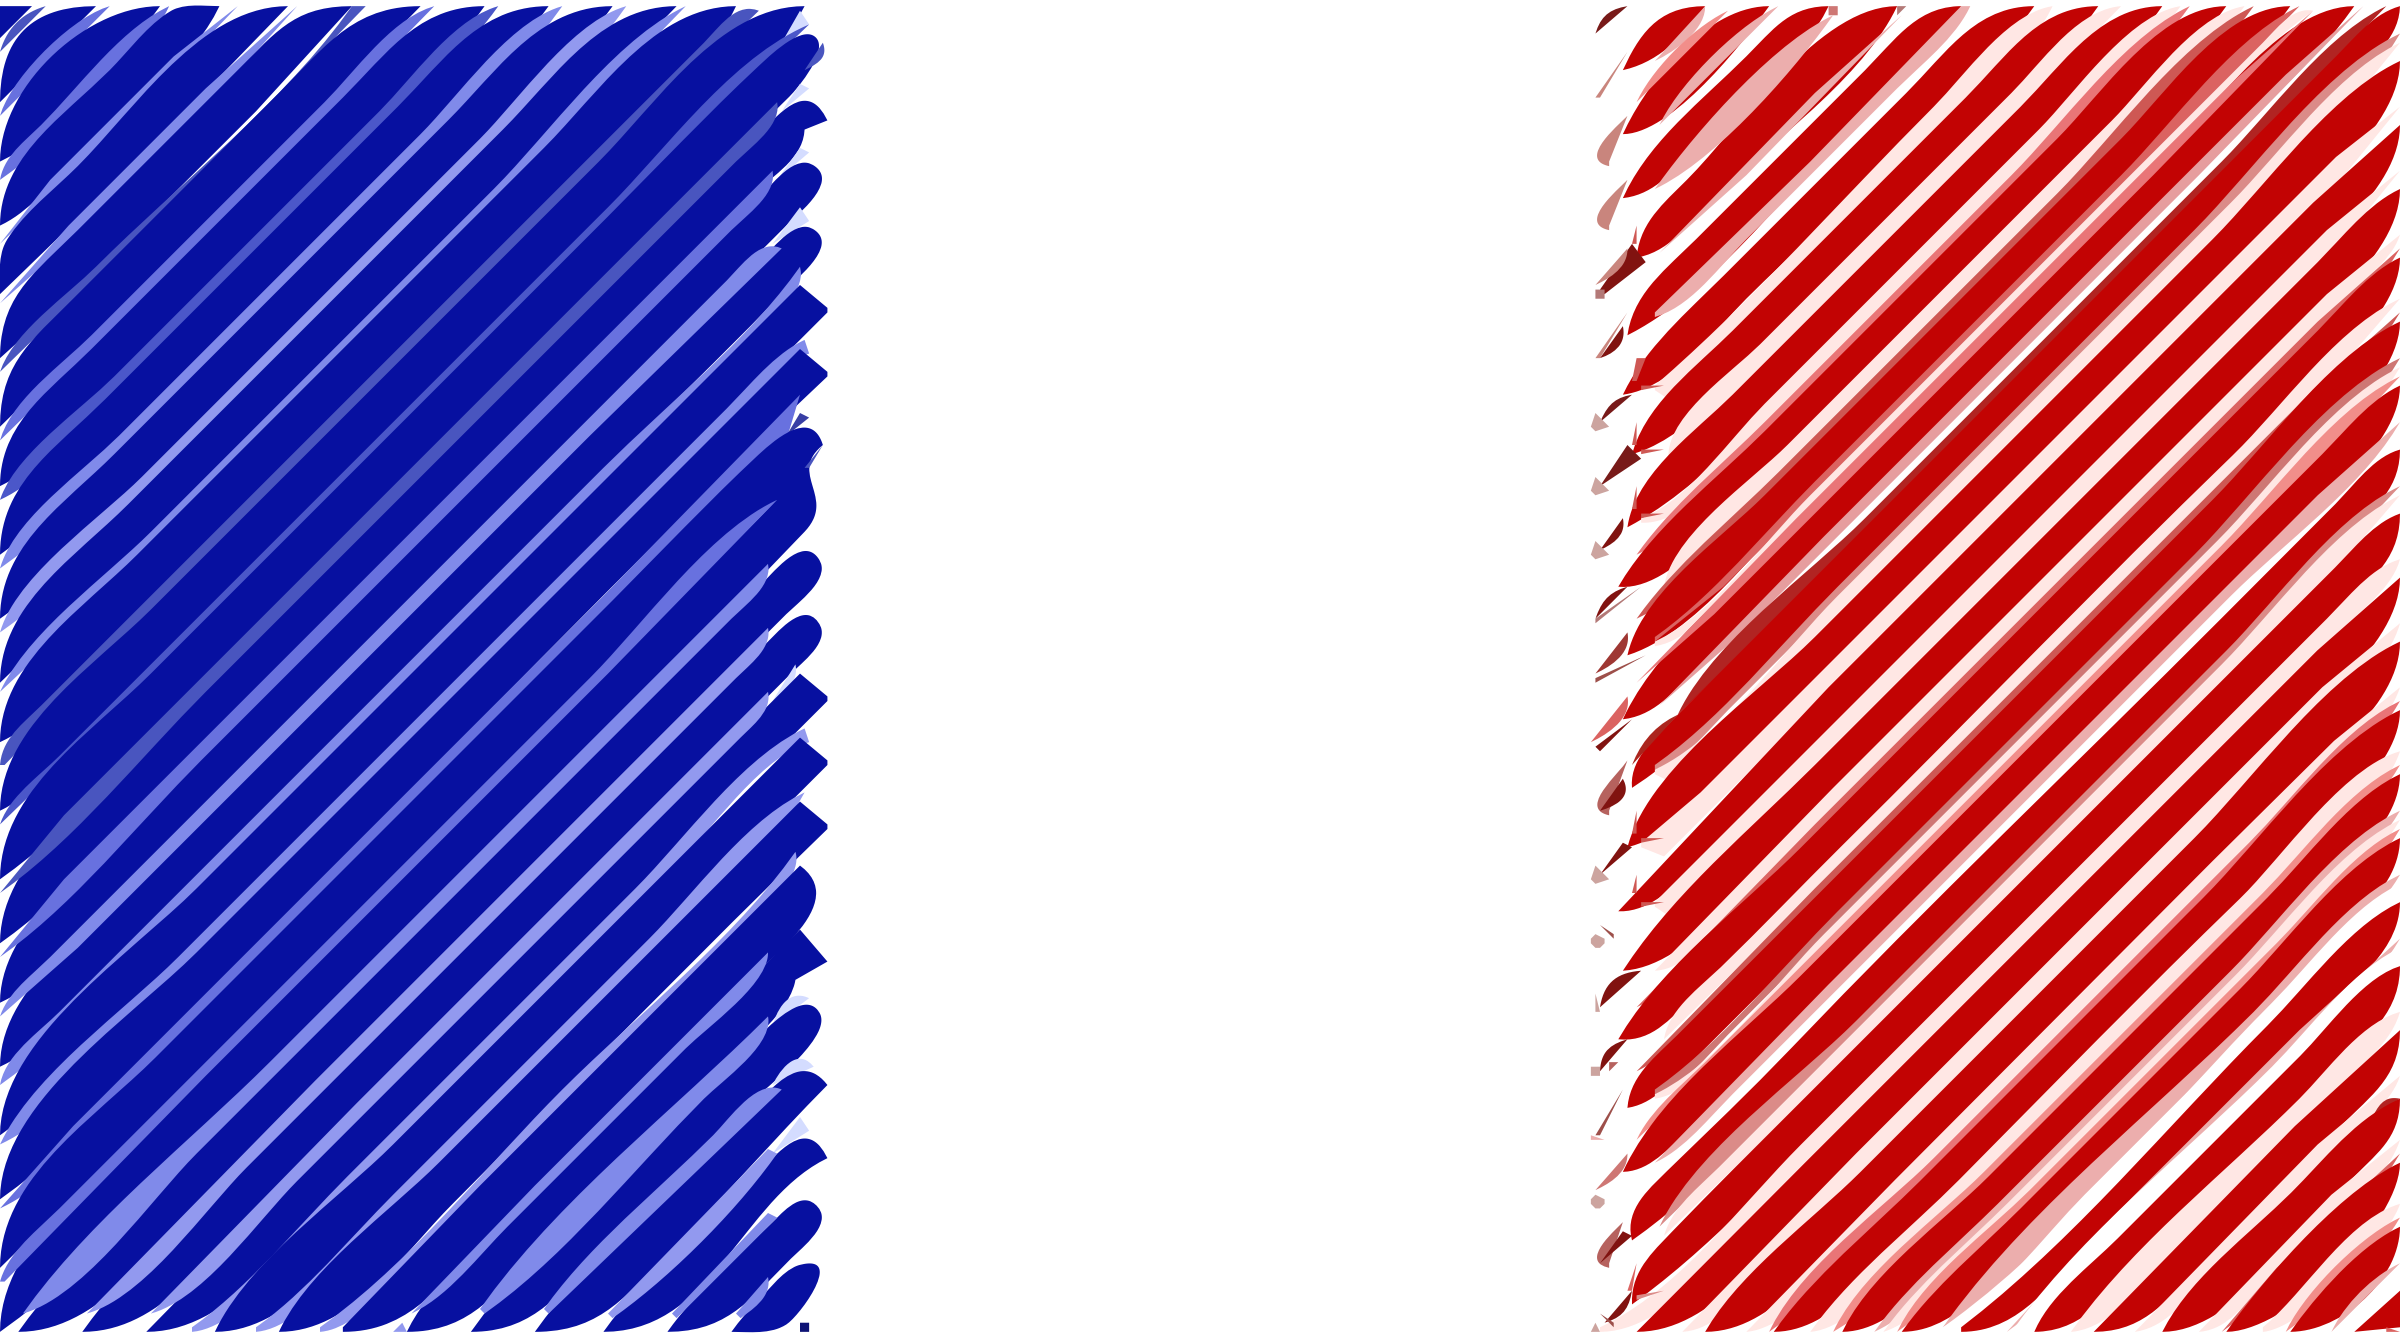 France flag linear by Joesph